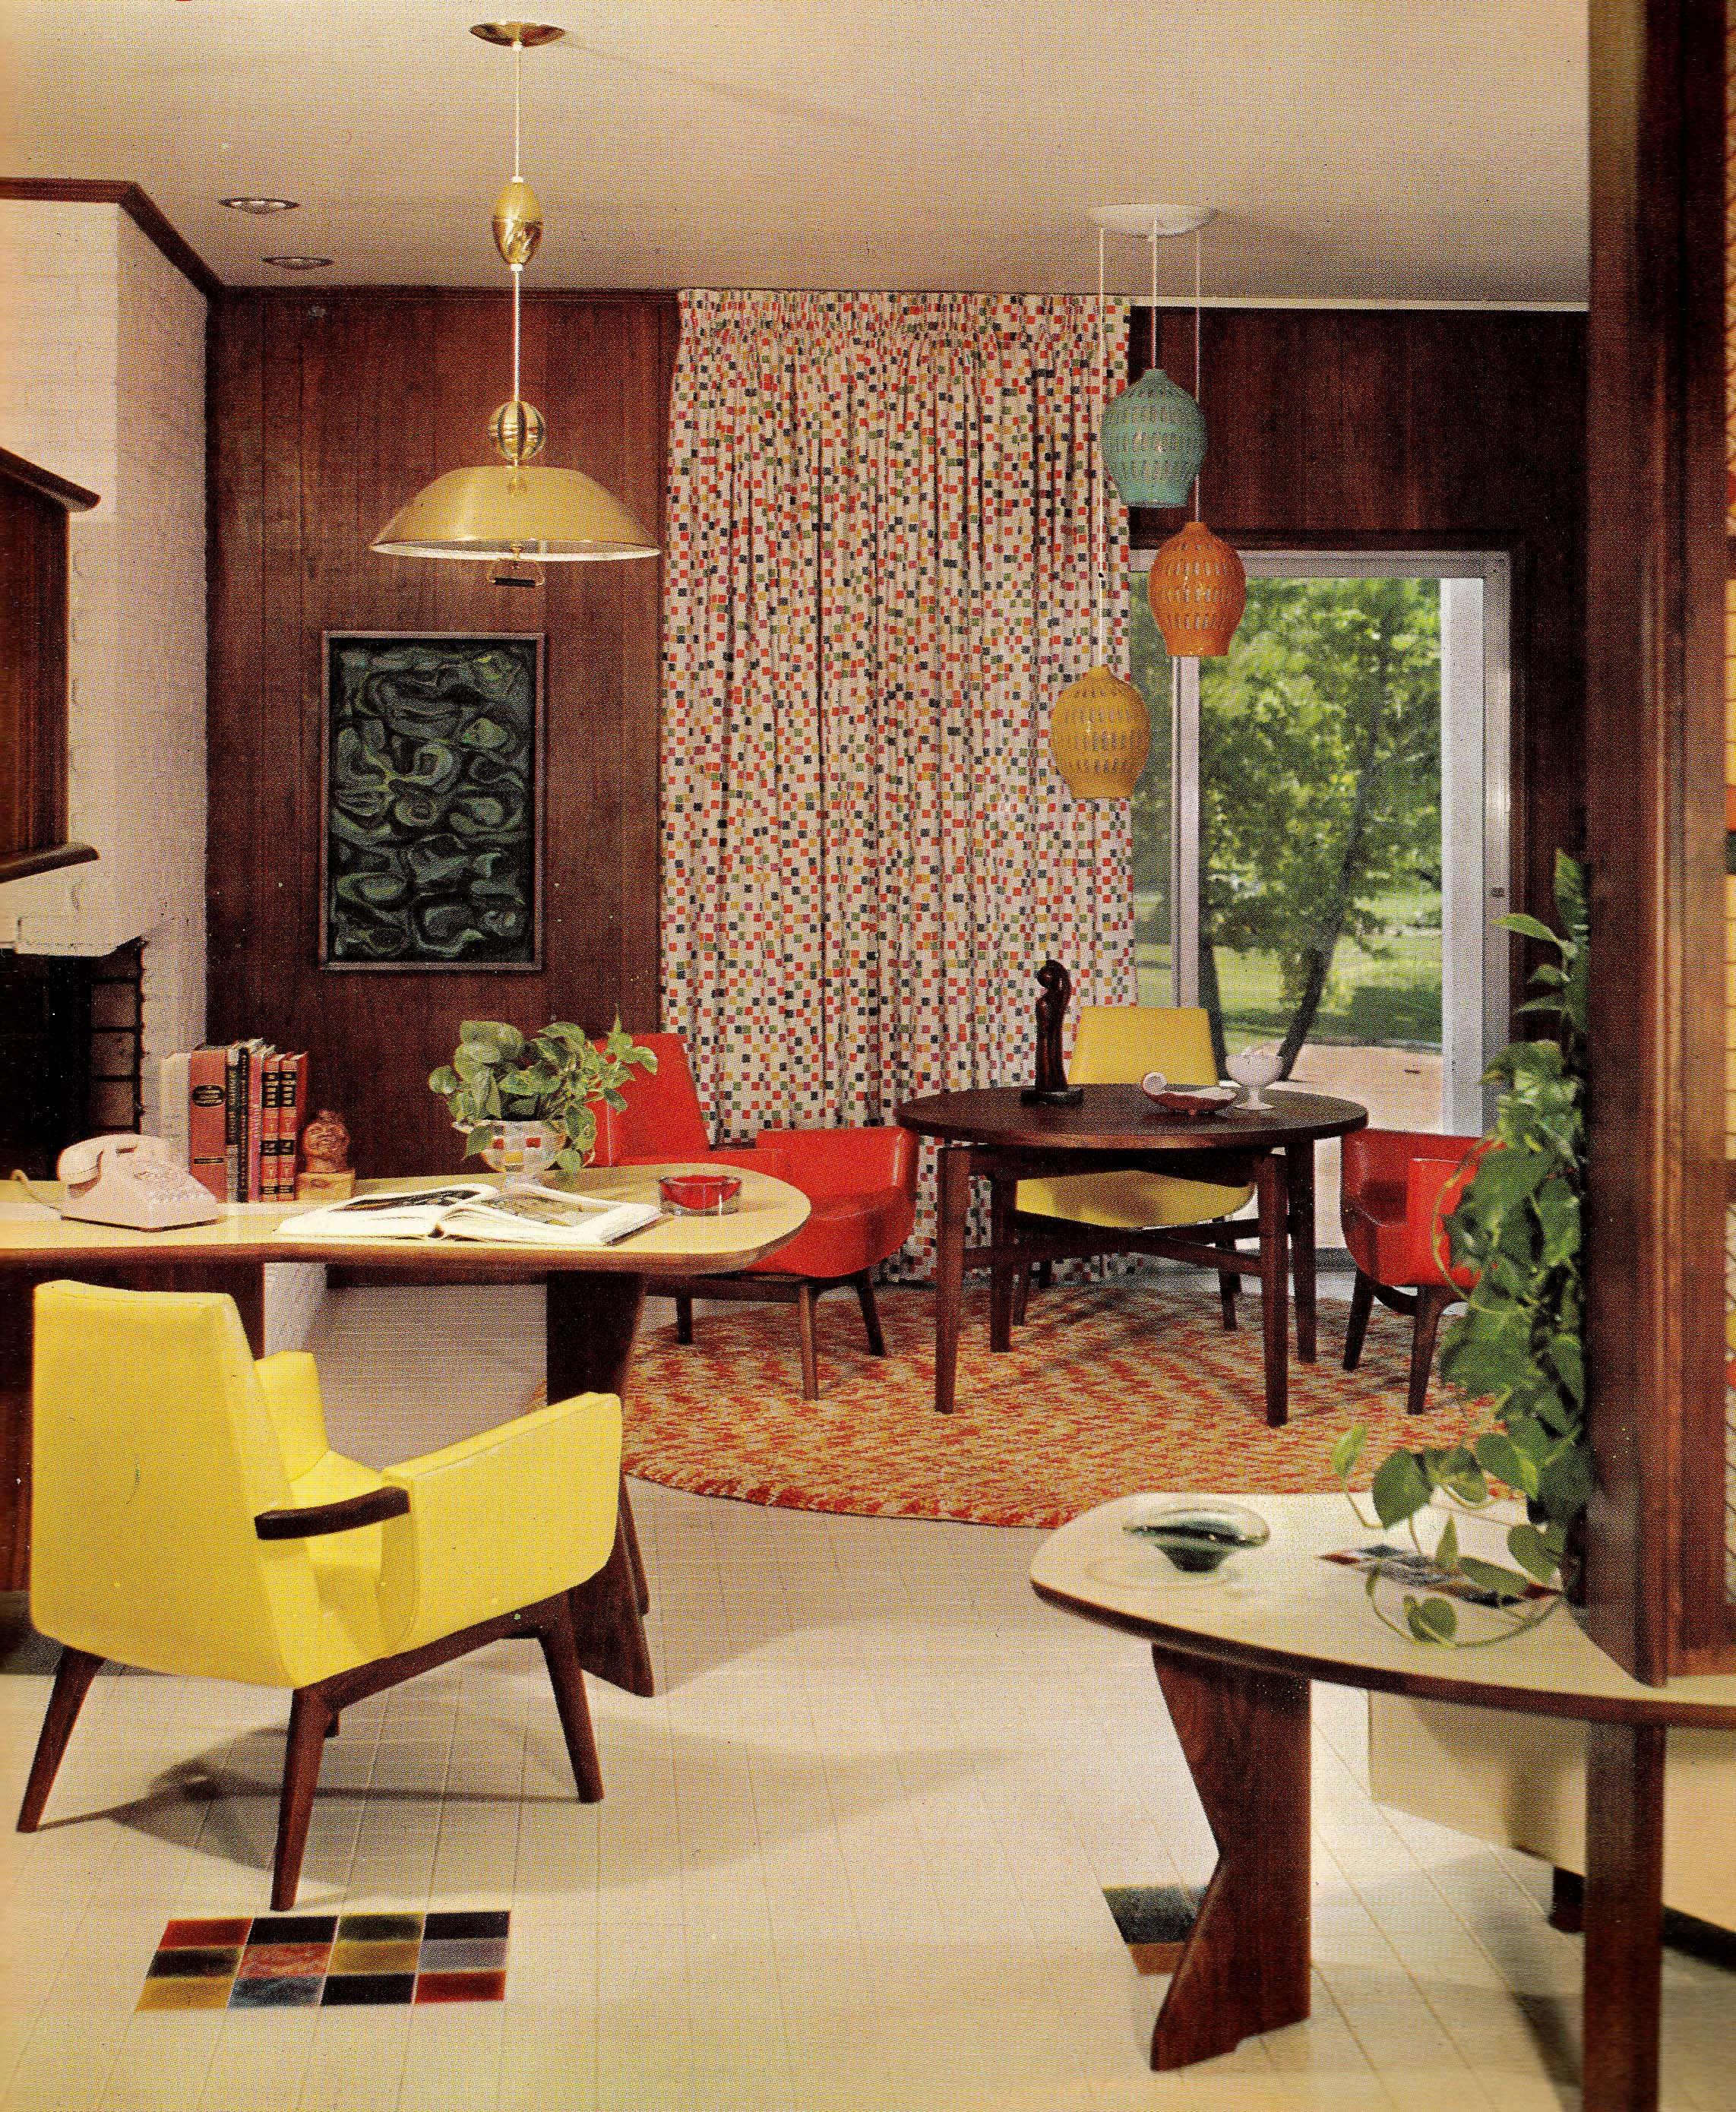 65 Cool Mid Century Living Room Decor Ideas: Home '65: A Groovy Look At Mid-Sixties Interior Décor